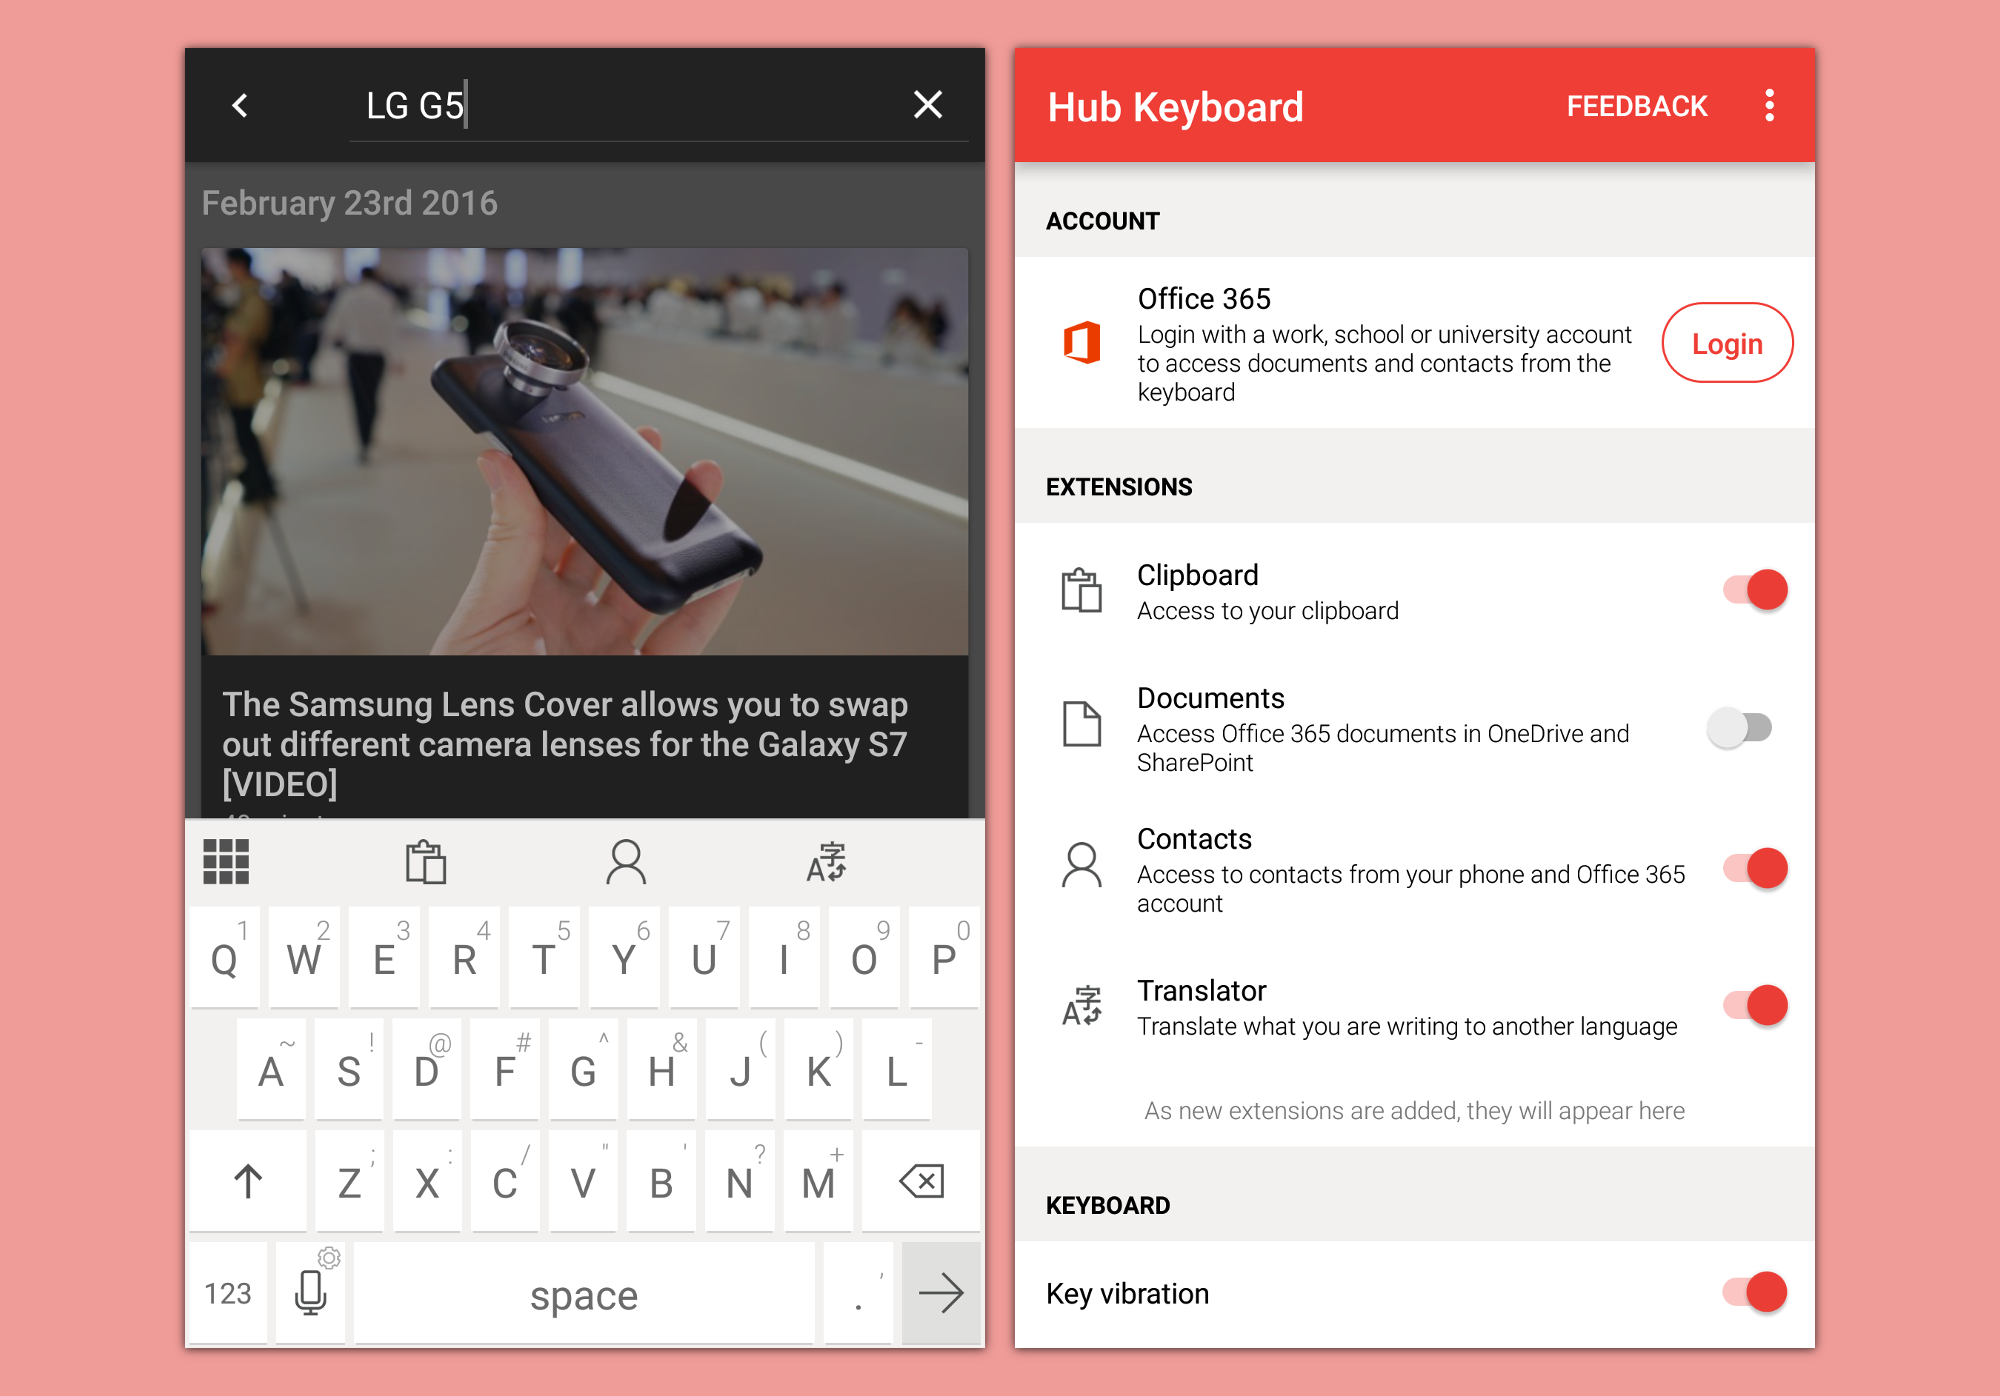 Microsoft Hub Keyboard for Android includes translation, clipboard, search tools